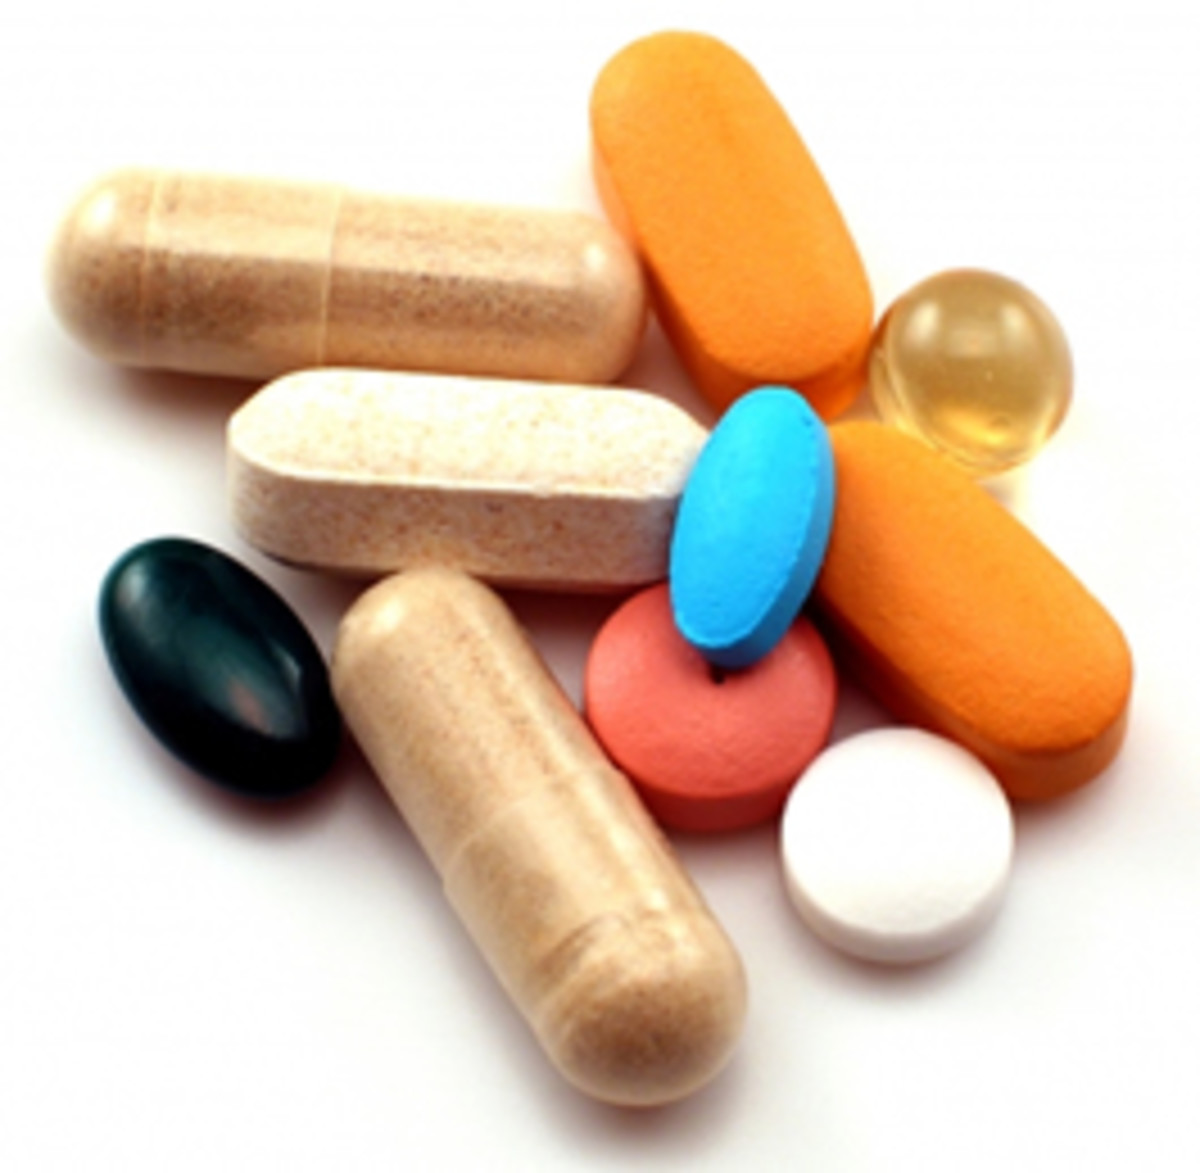 What are Fat-Soluble Vitamins? The Differences Between Fat-Soluble and Water-Soluble Vitamins